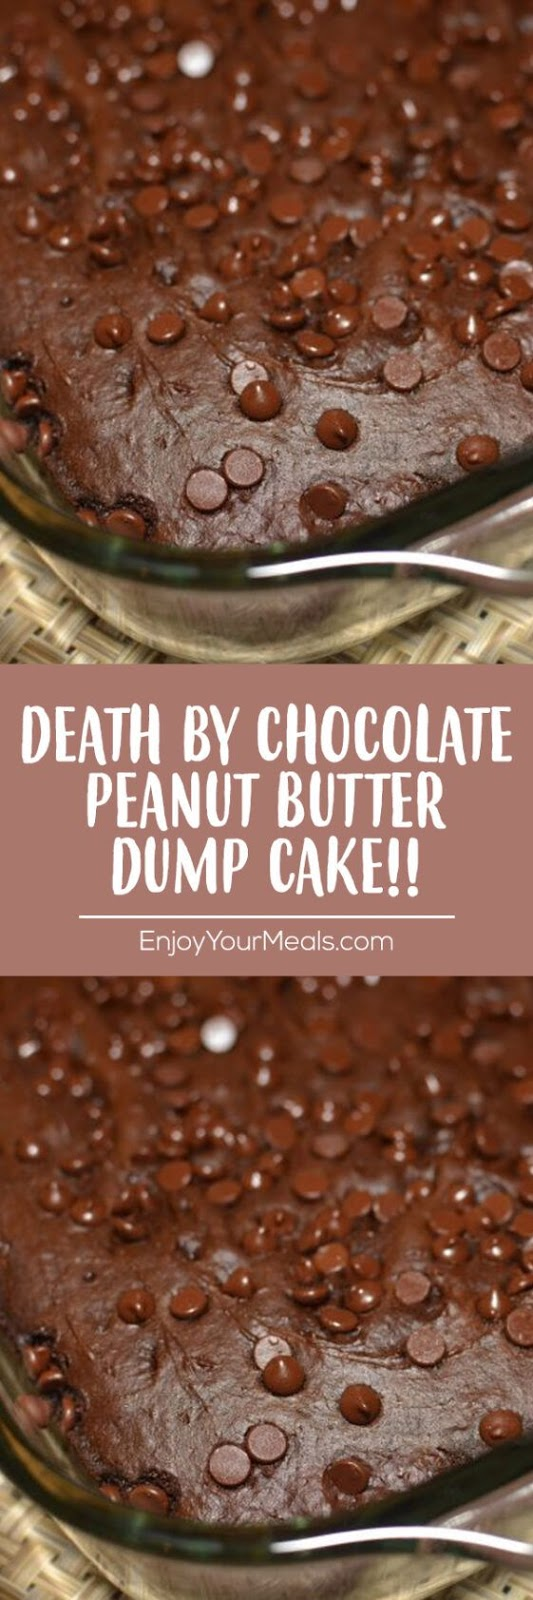 Death by Chocolate Peanut Butter Dump Cake!! - Enjoy Your meals